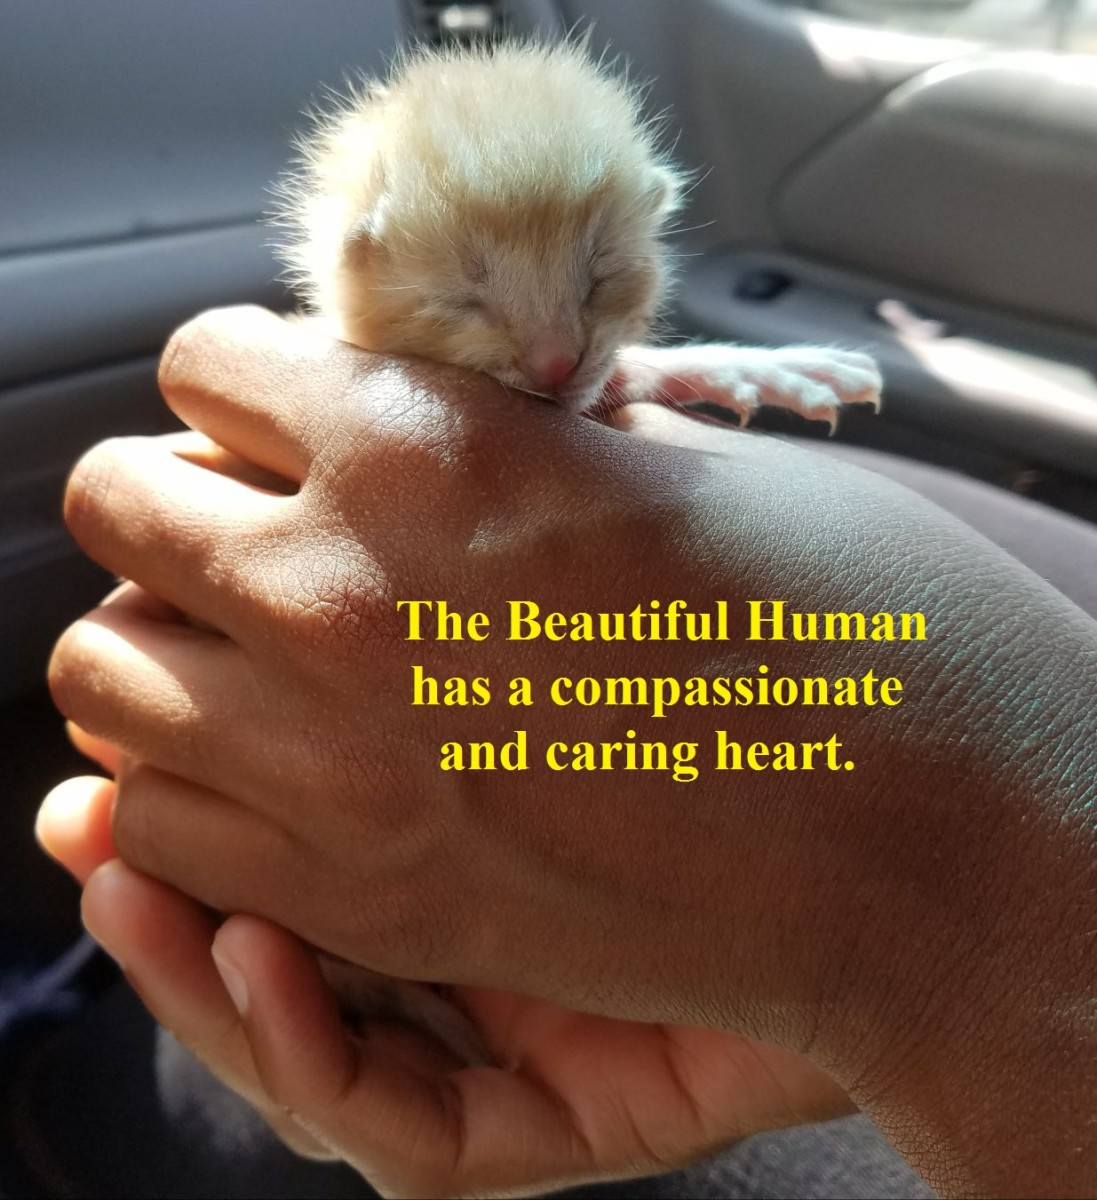 The Beautiful Human has a compassionate and caring heart.